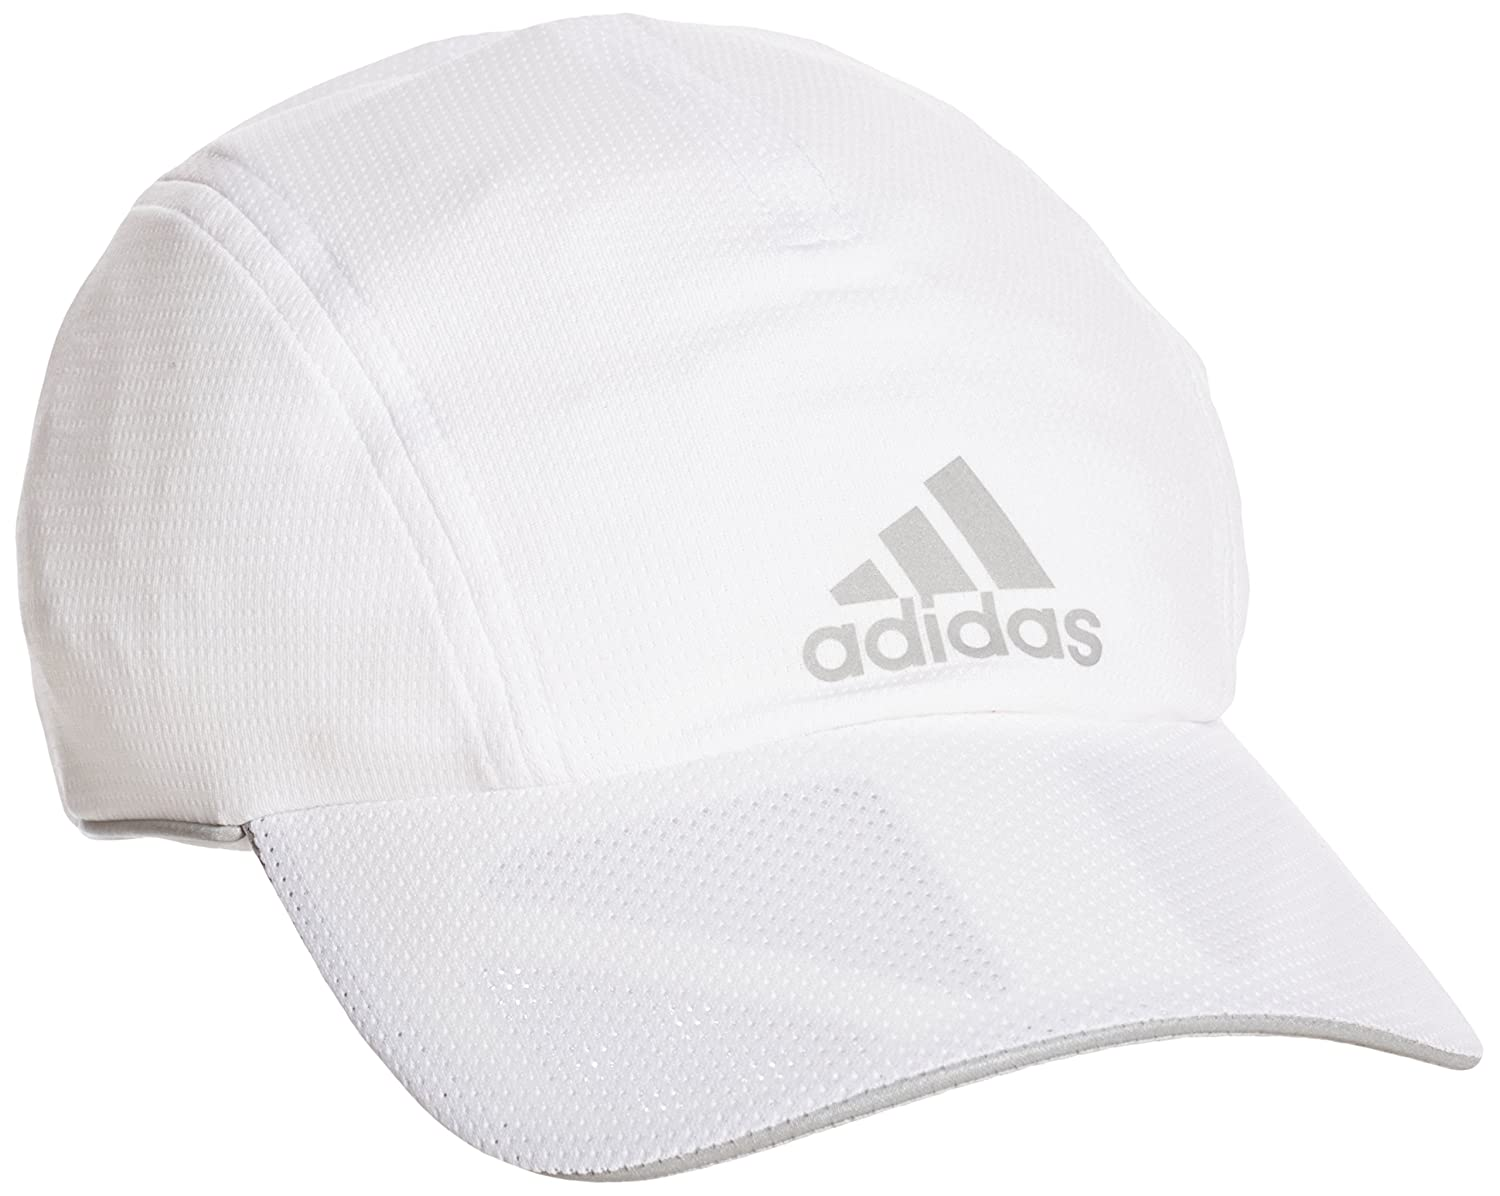 adidas Run No Fly Cap - Gorra unisex, color blanco/negro, talla OSFM